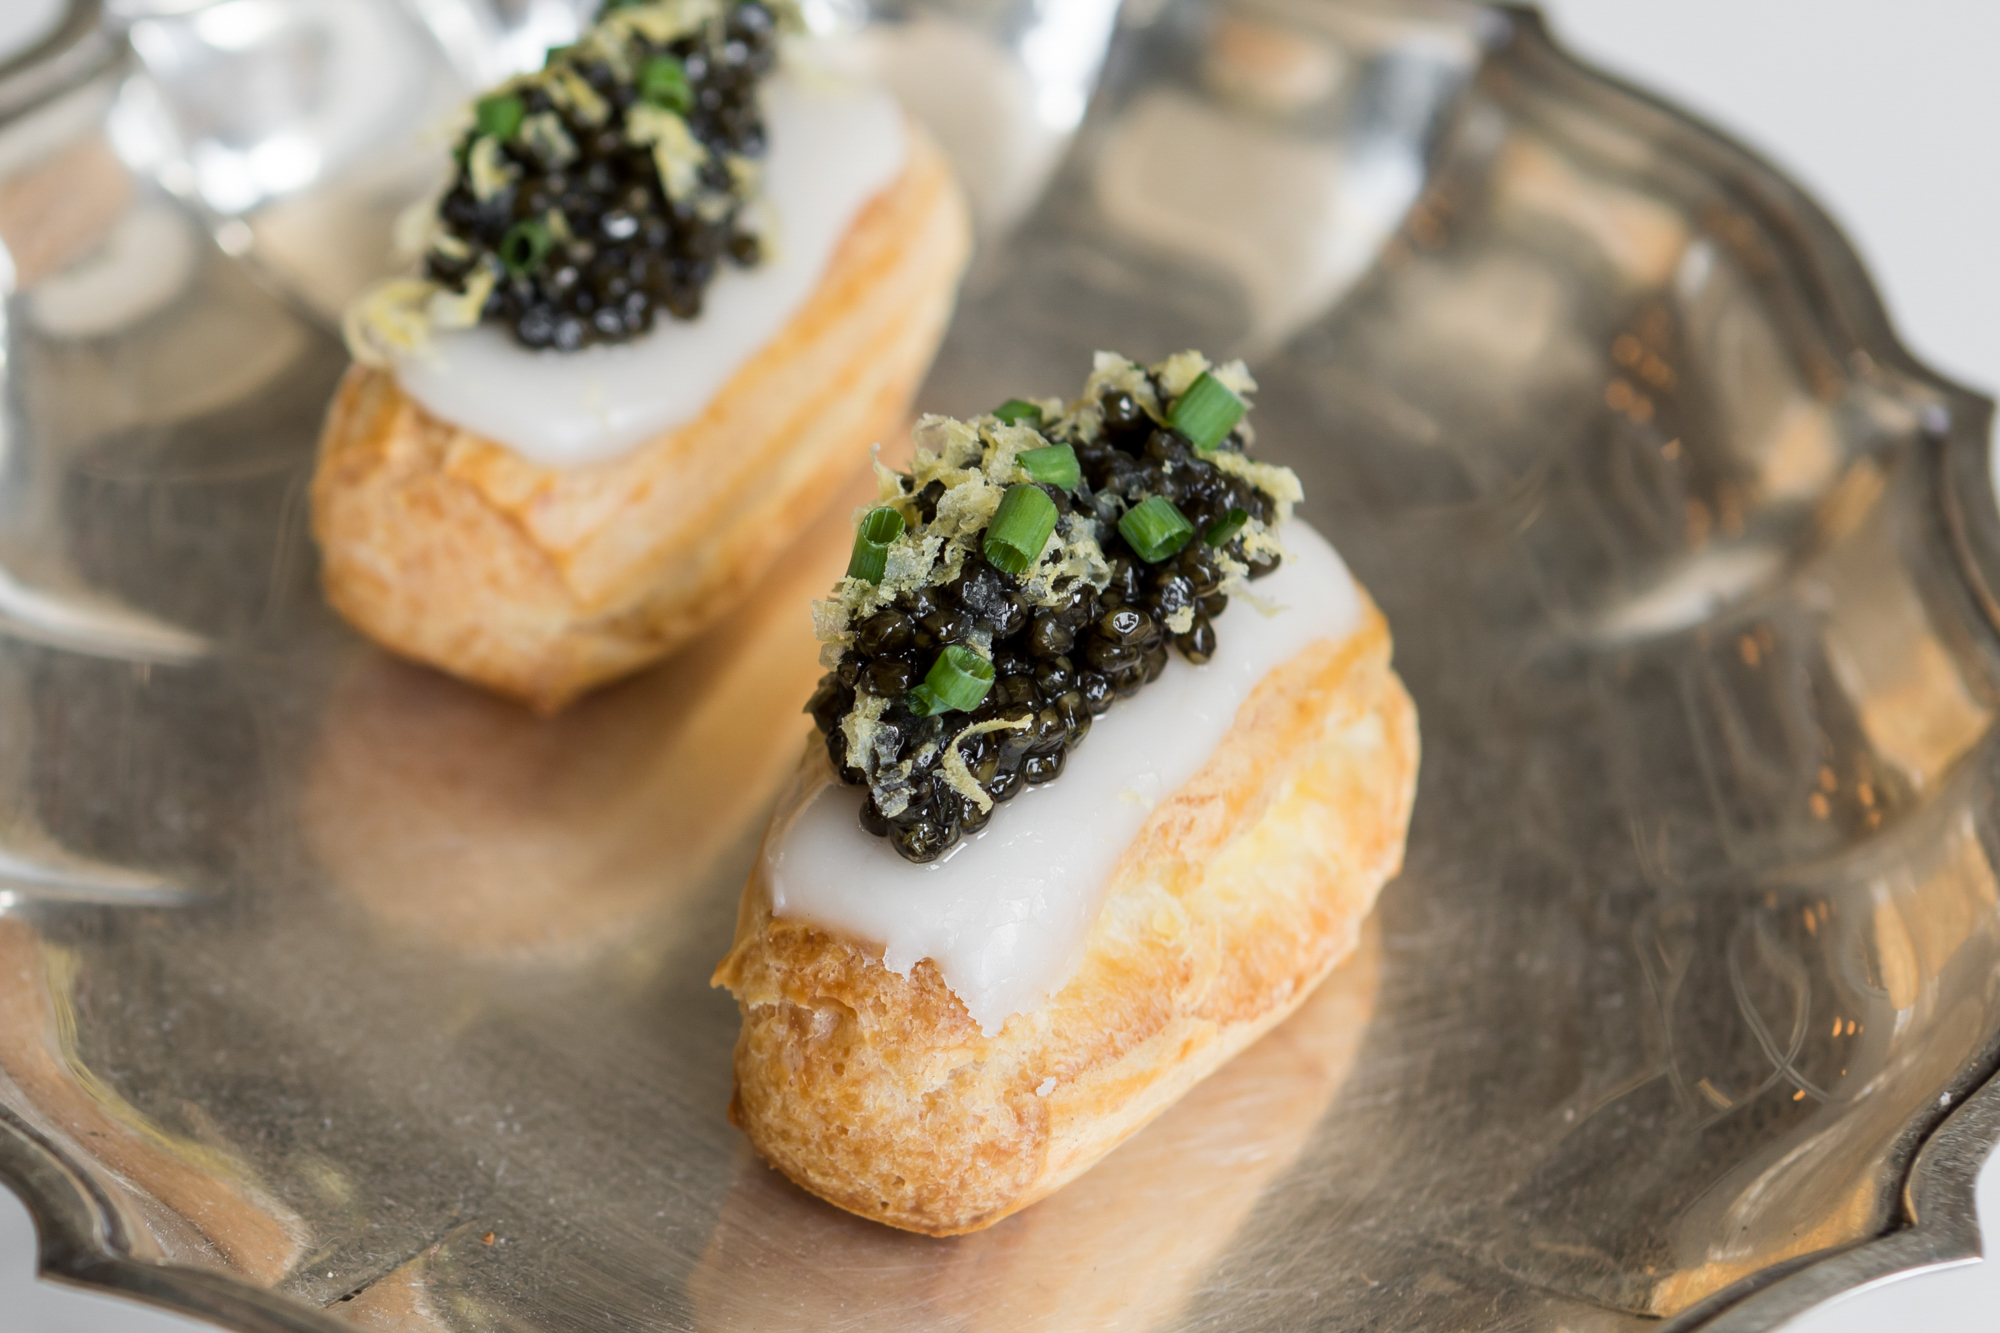 Caviar eclairs from Le Fantastique